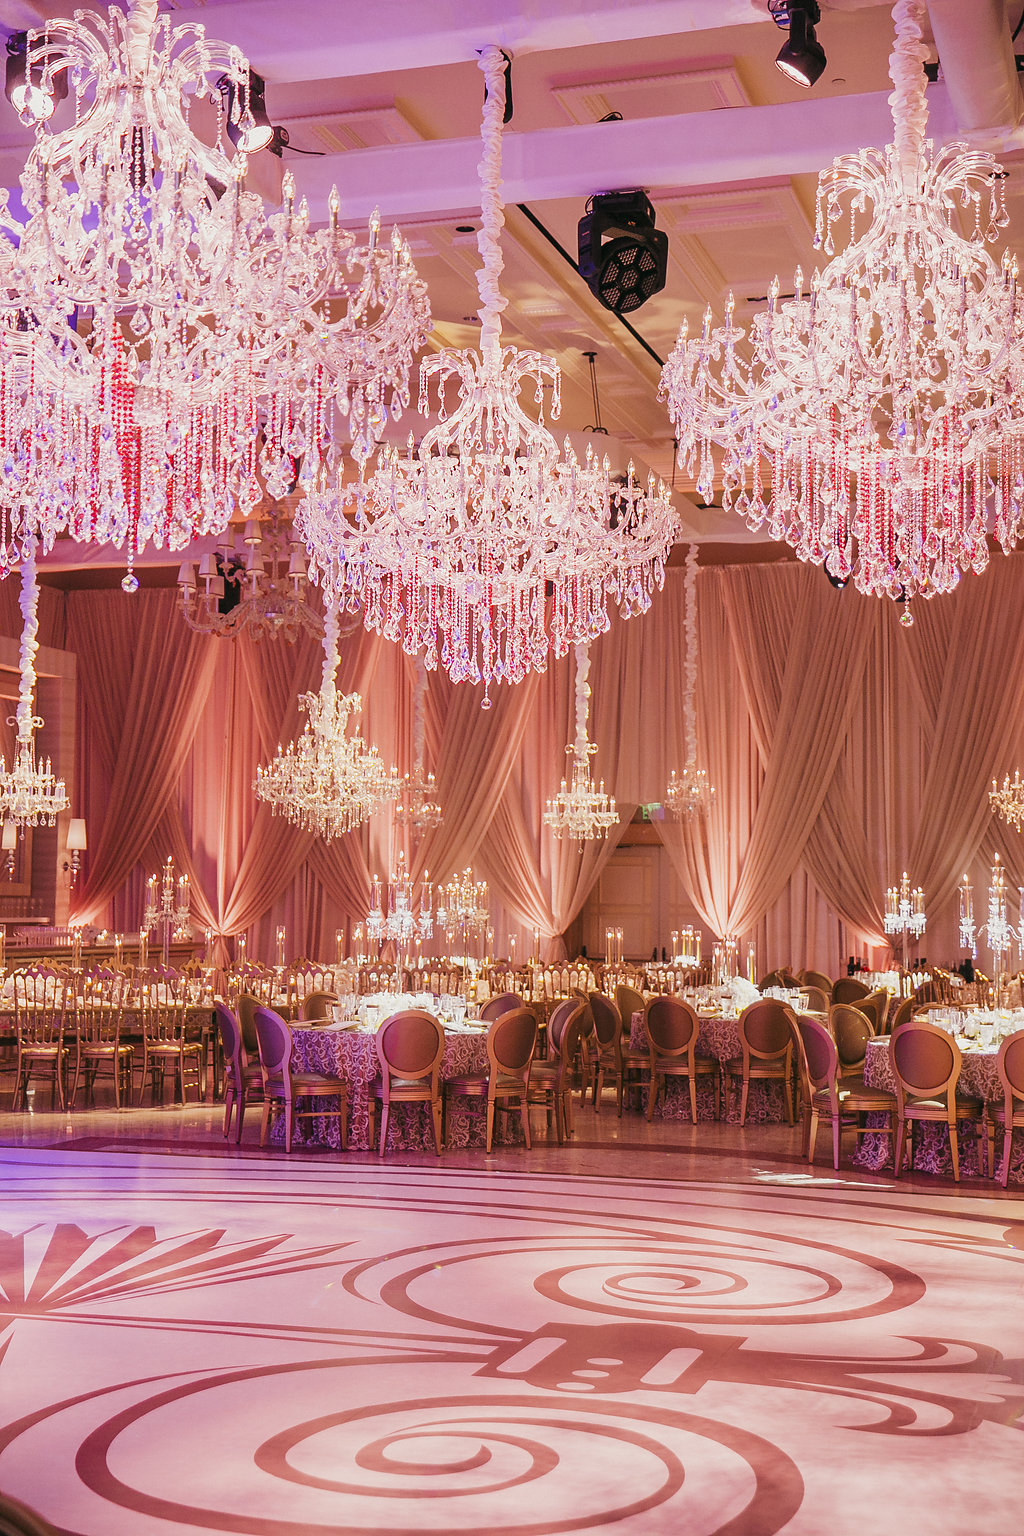 photo of chandeliers over tables and white dance floor in a ballroom